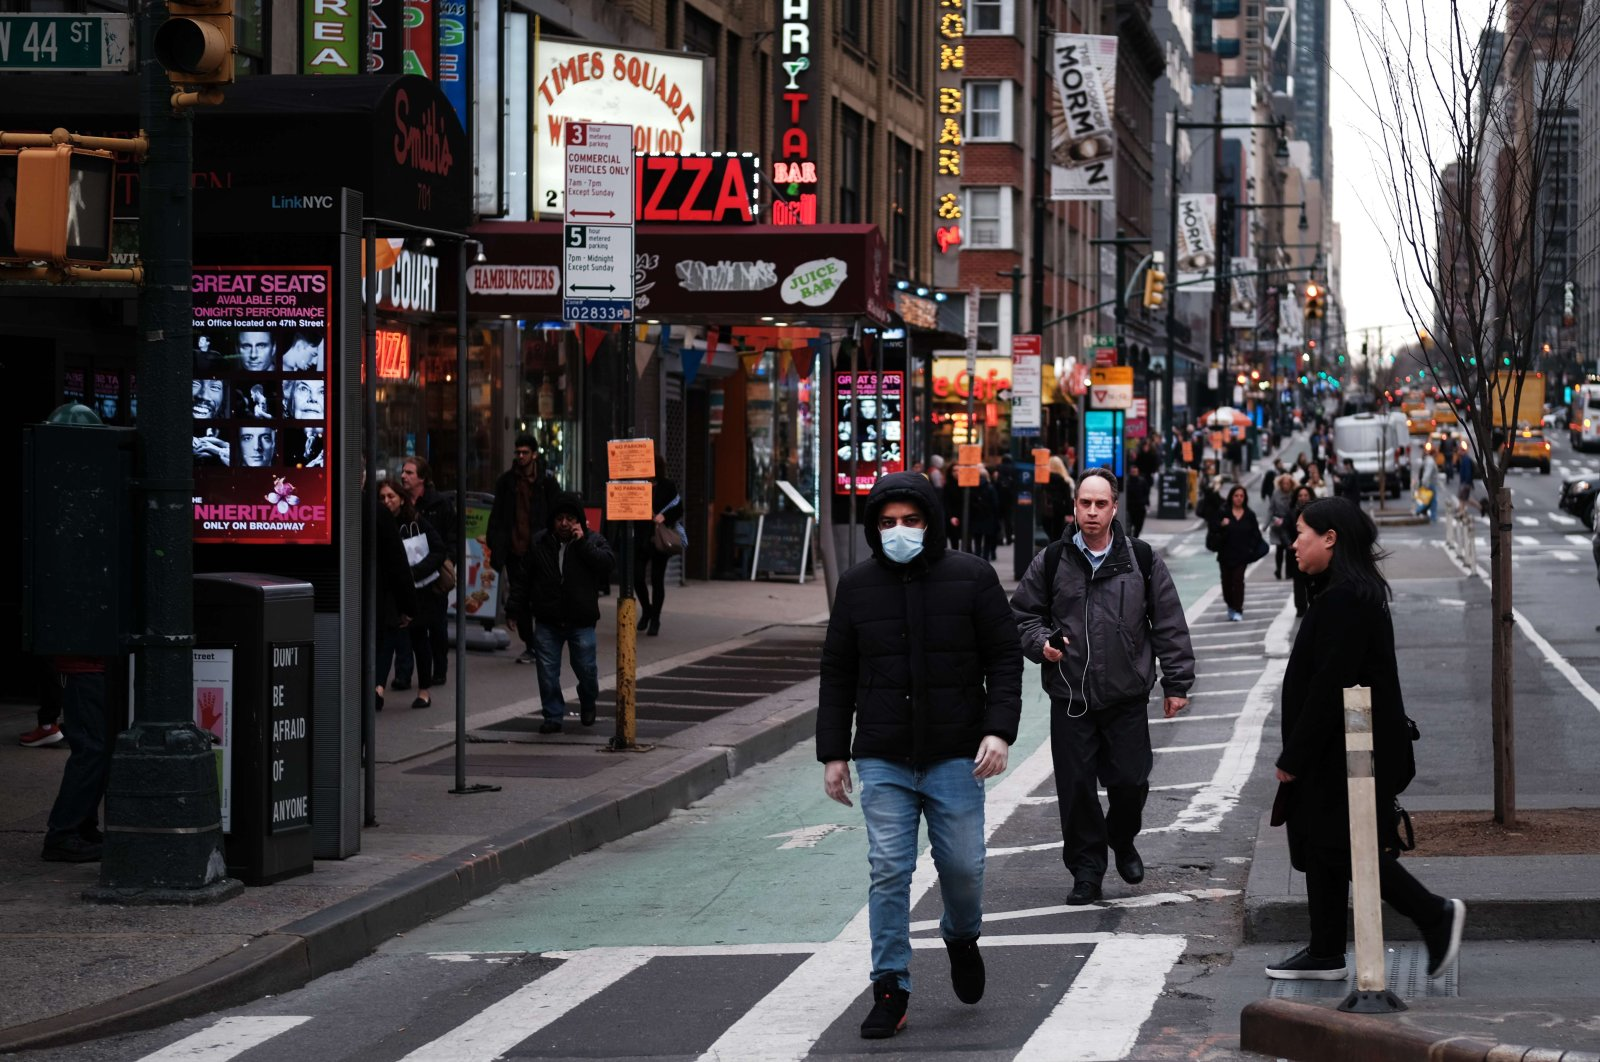 People walk near the Theater District in Manhattan on March 12 in New York City. New York City's Broadway theaters will need to close by 5 p.m. Thursday after New York Gov. Andrew Cuomo announced a ban on gatherings of 500 people or more amid the growing coronavirus outbreak. (AFP Photo)